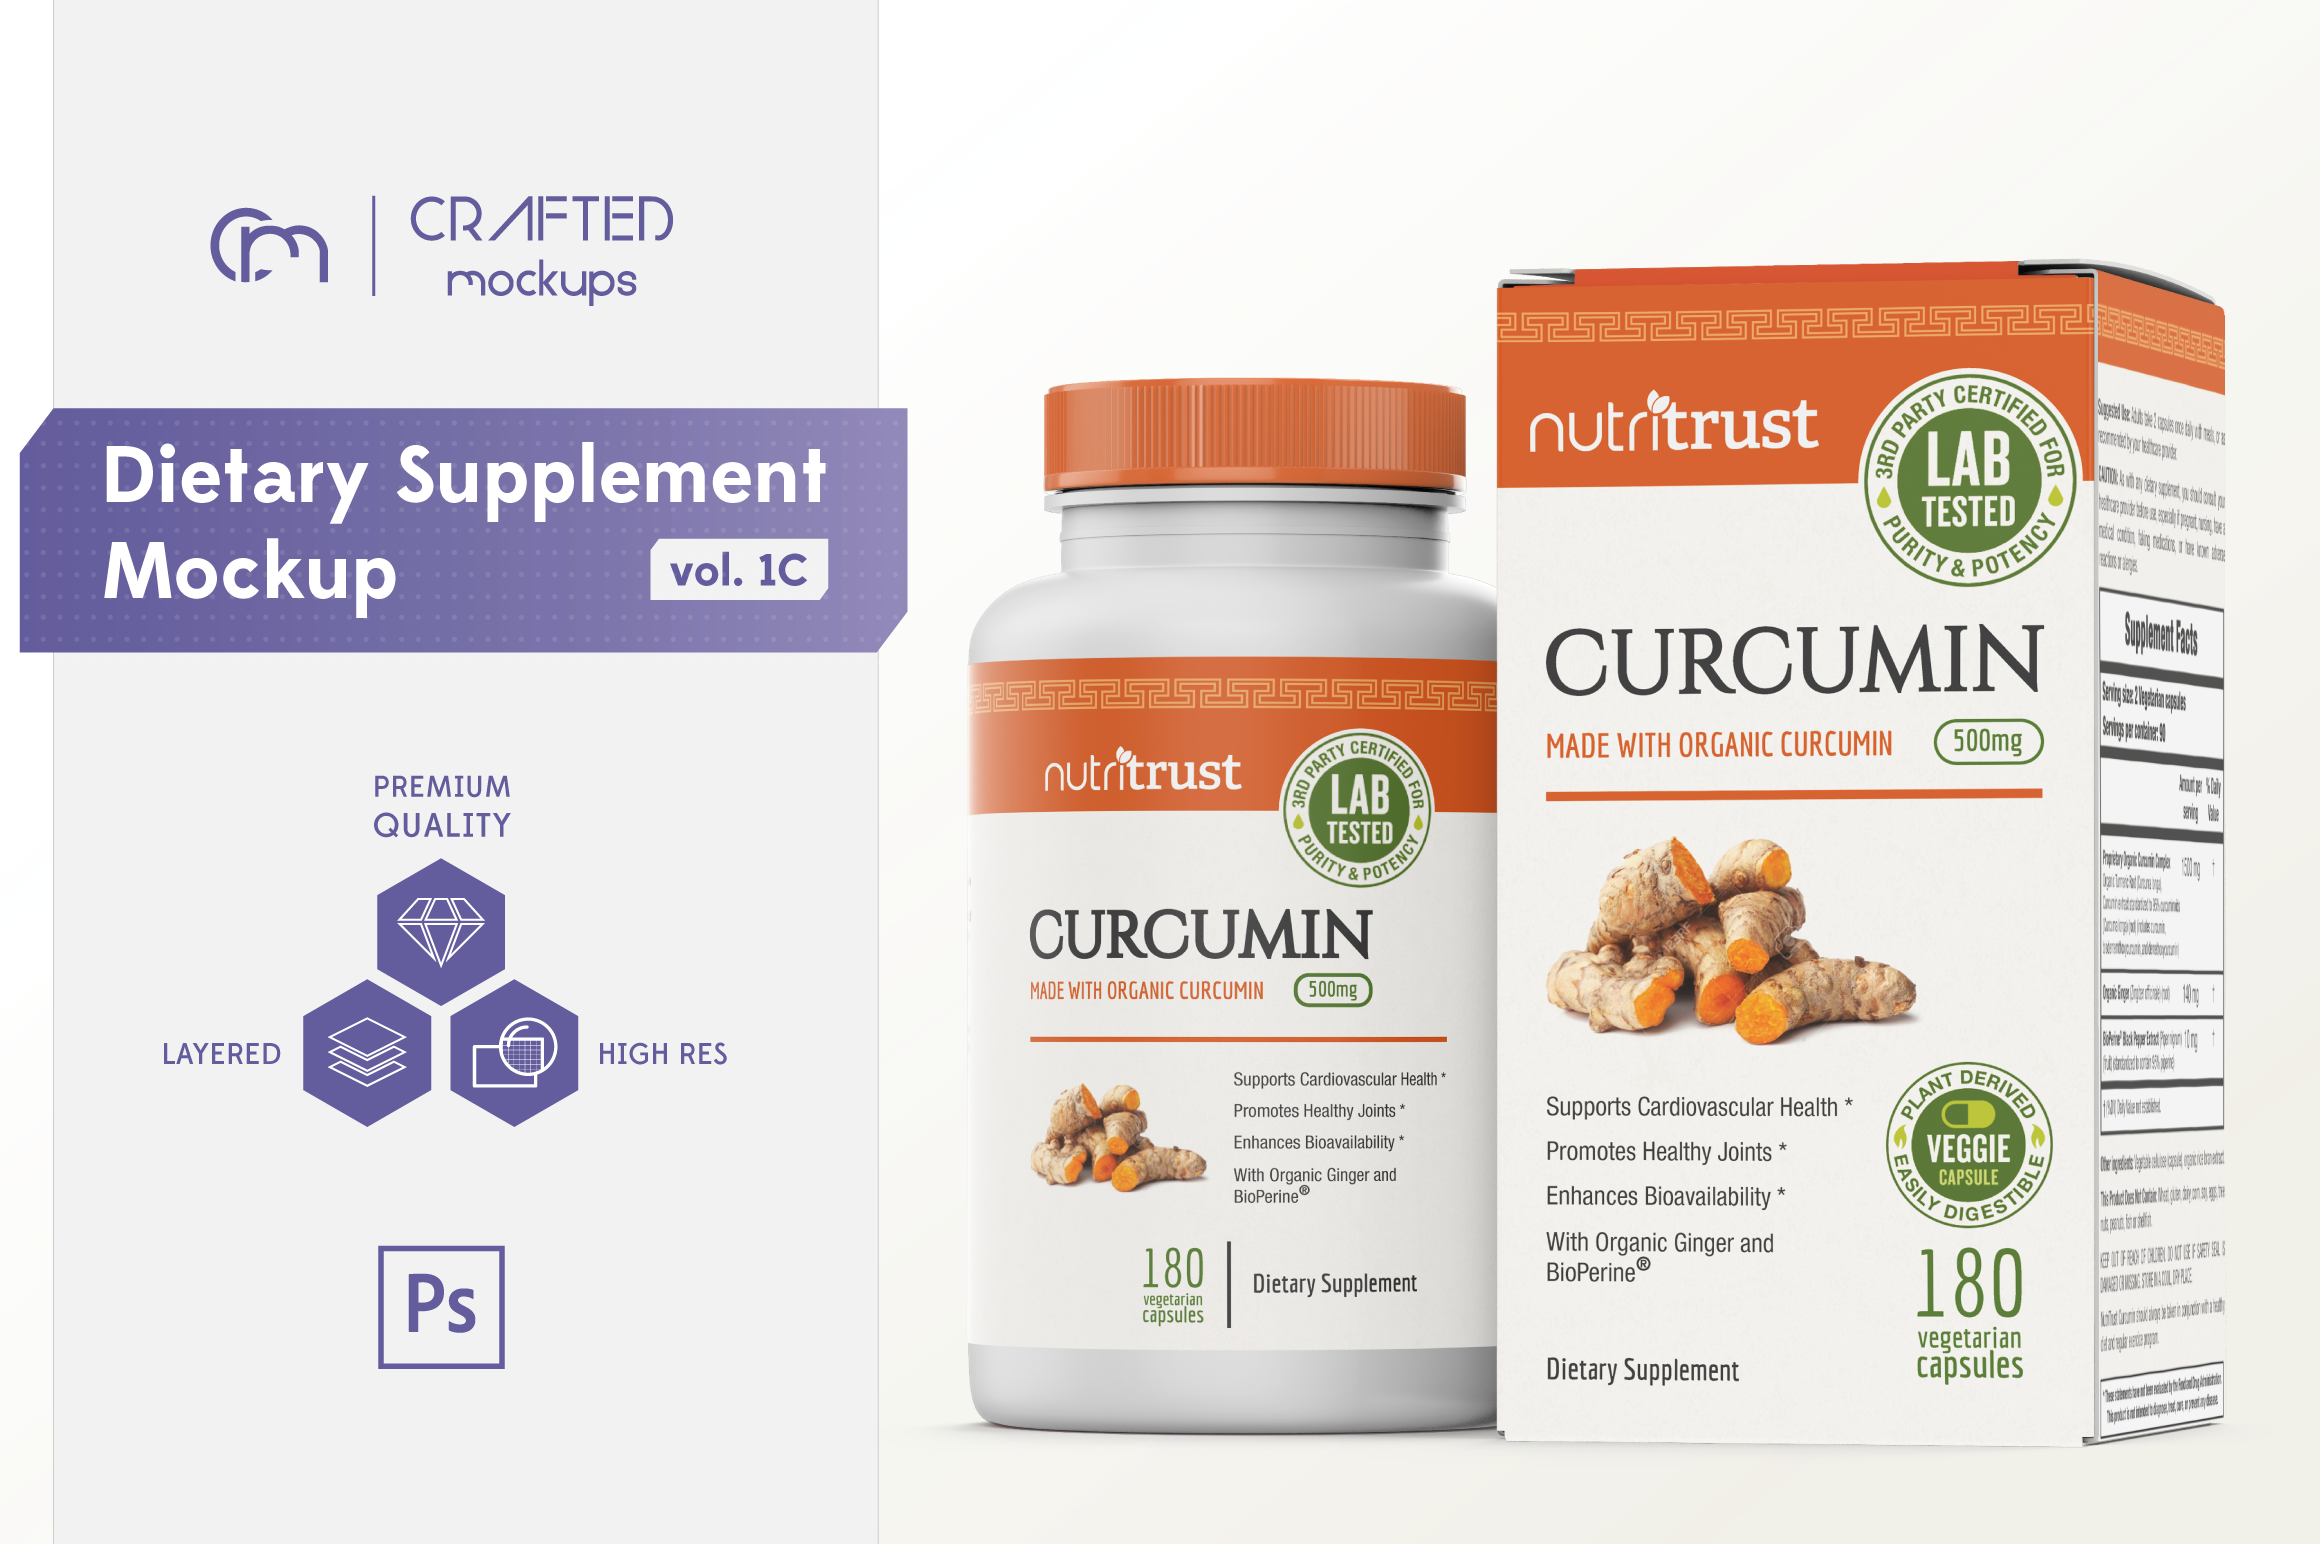 Dietary Supplement Mockup v. 1C example image 1